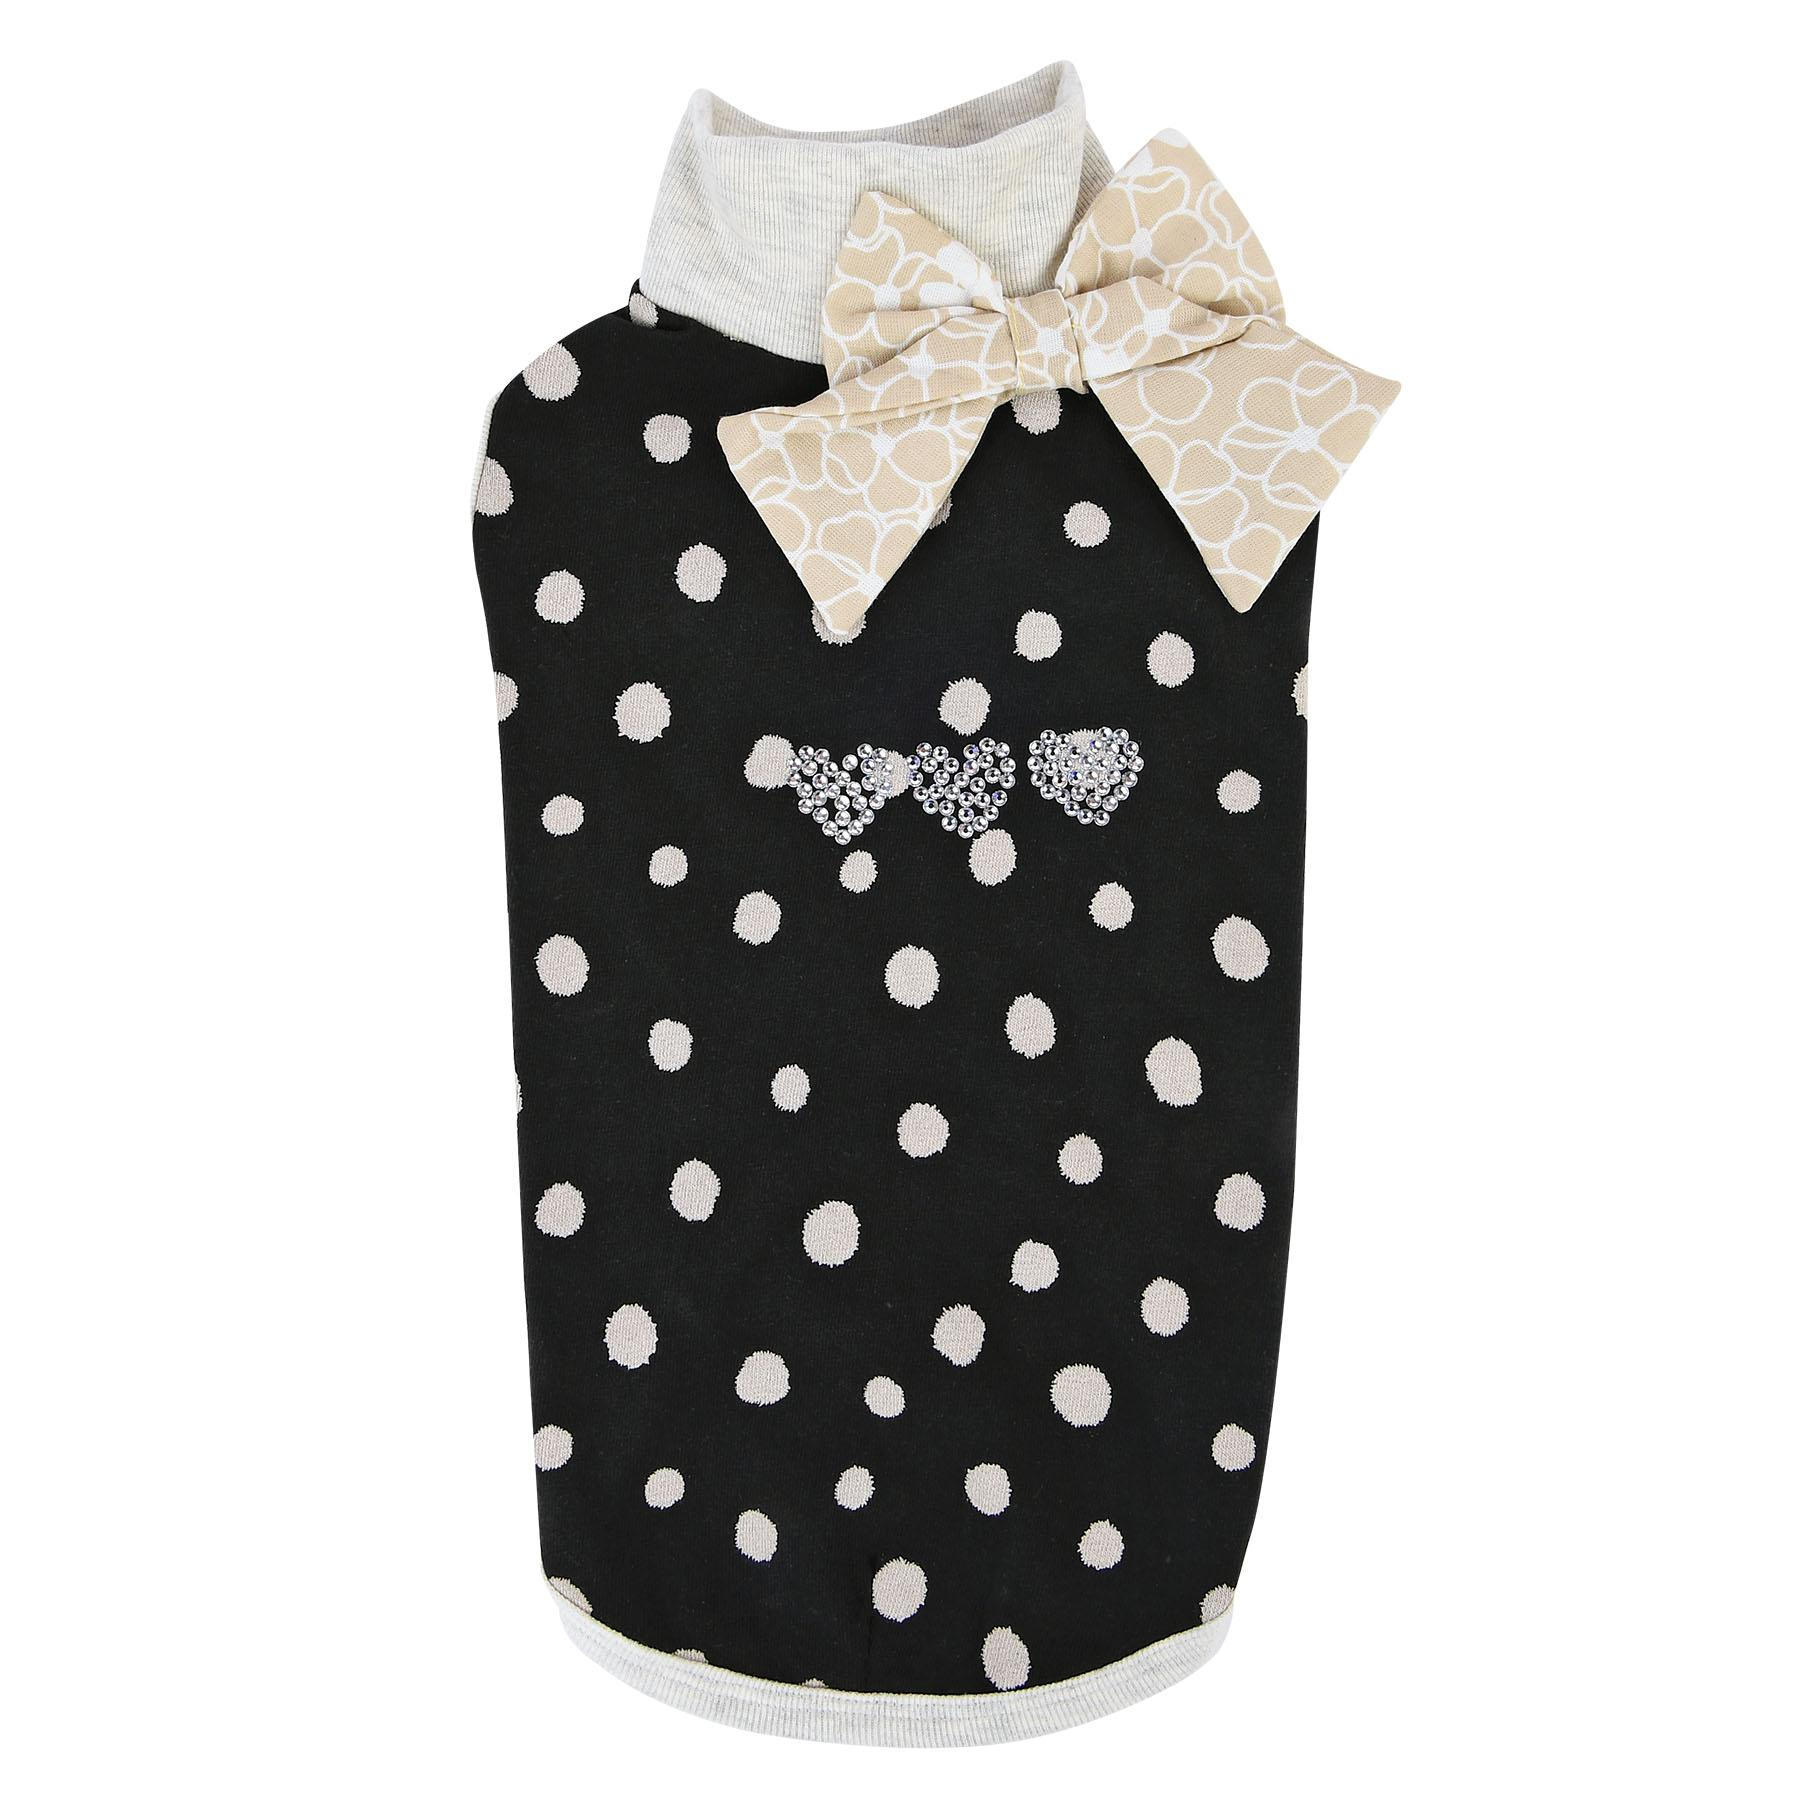 Coco Turtleneck Cat Shirt by Catspia - Black